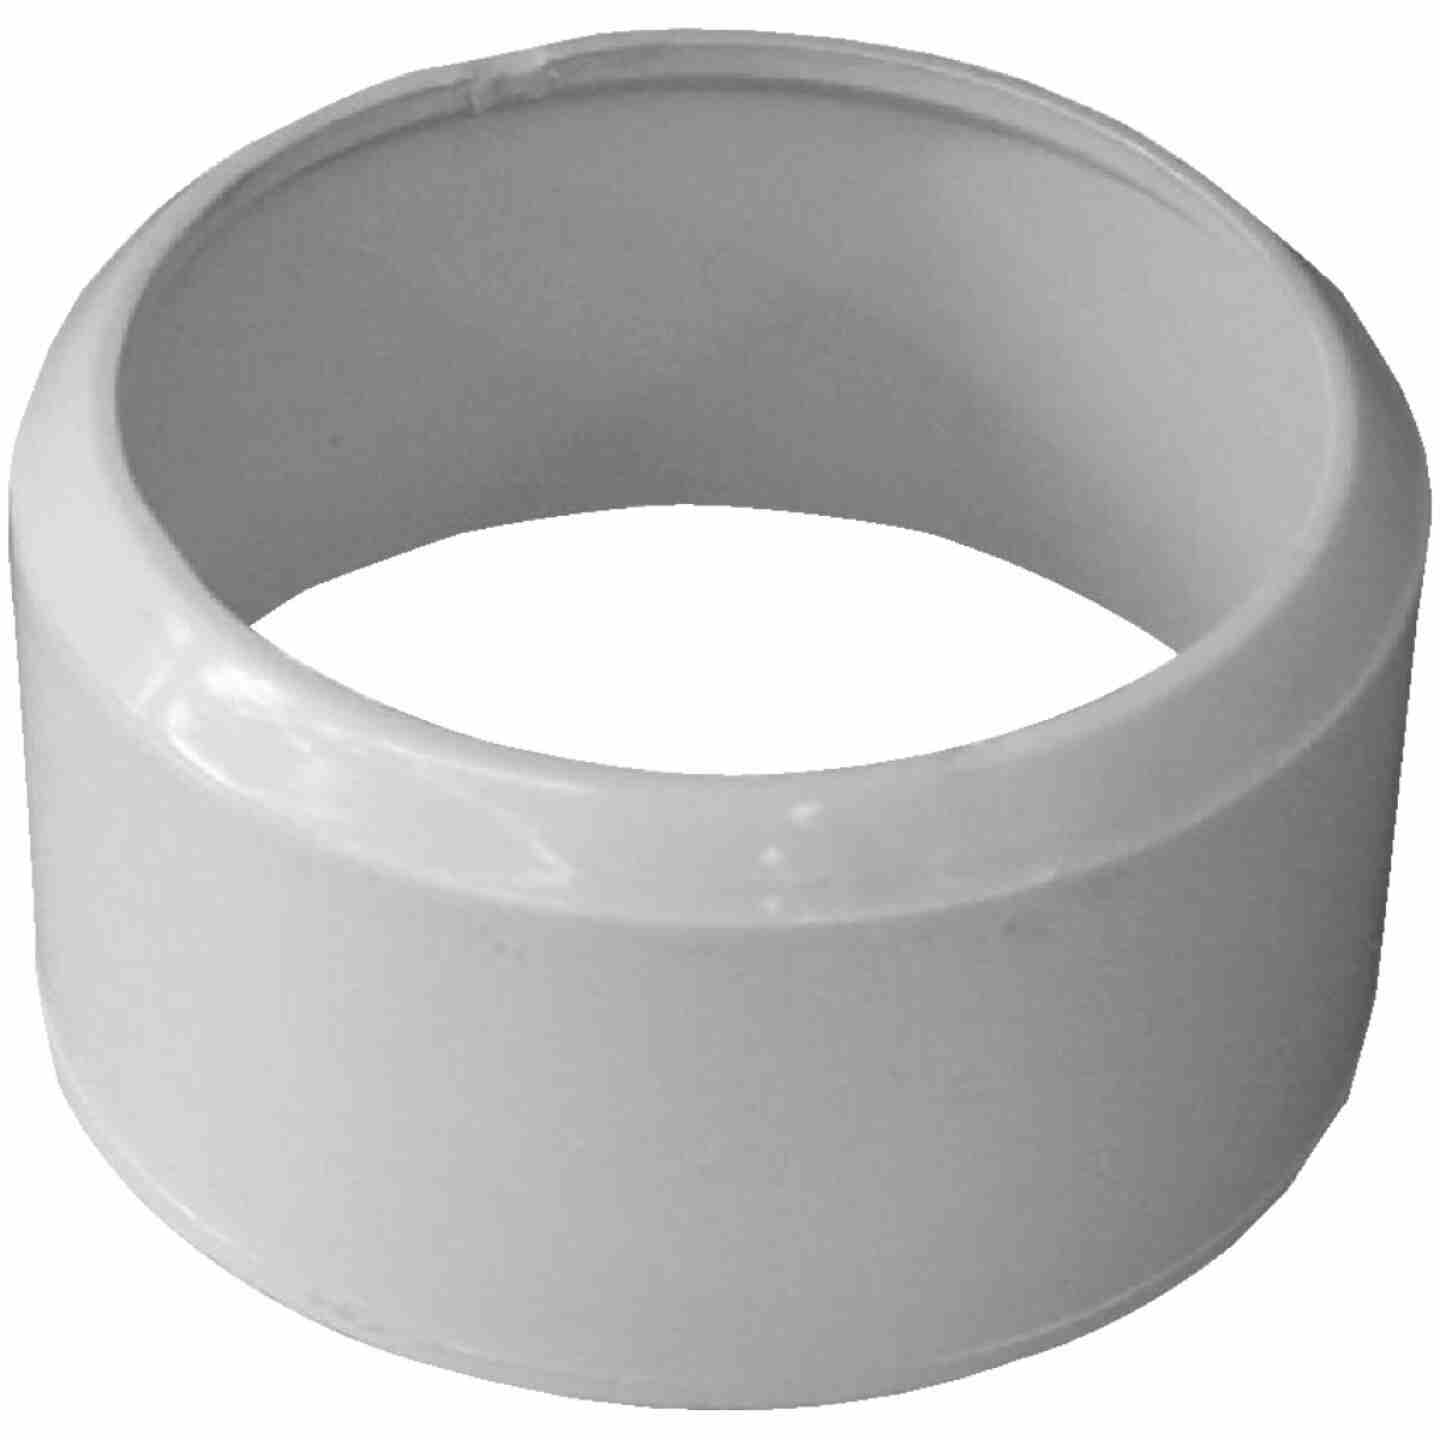 IPEX Canplas Schedule 40 3 In. PVC Sewer and Drain Bushing Image 1